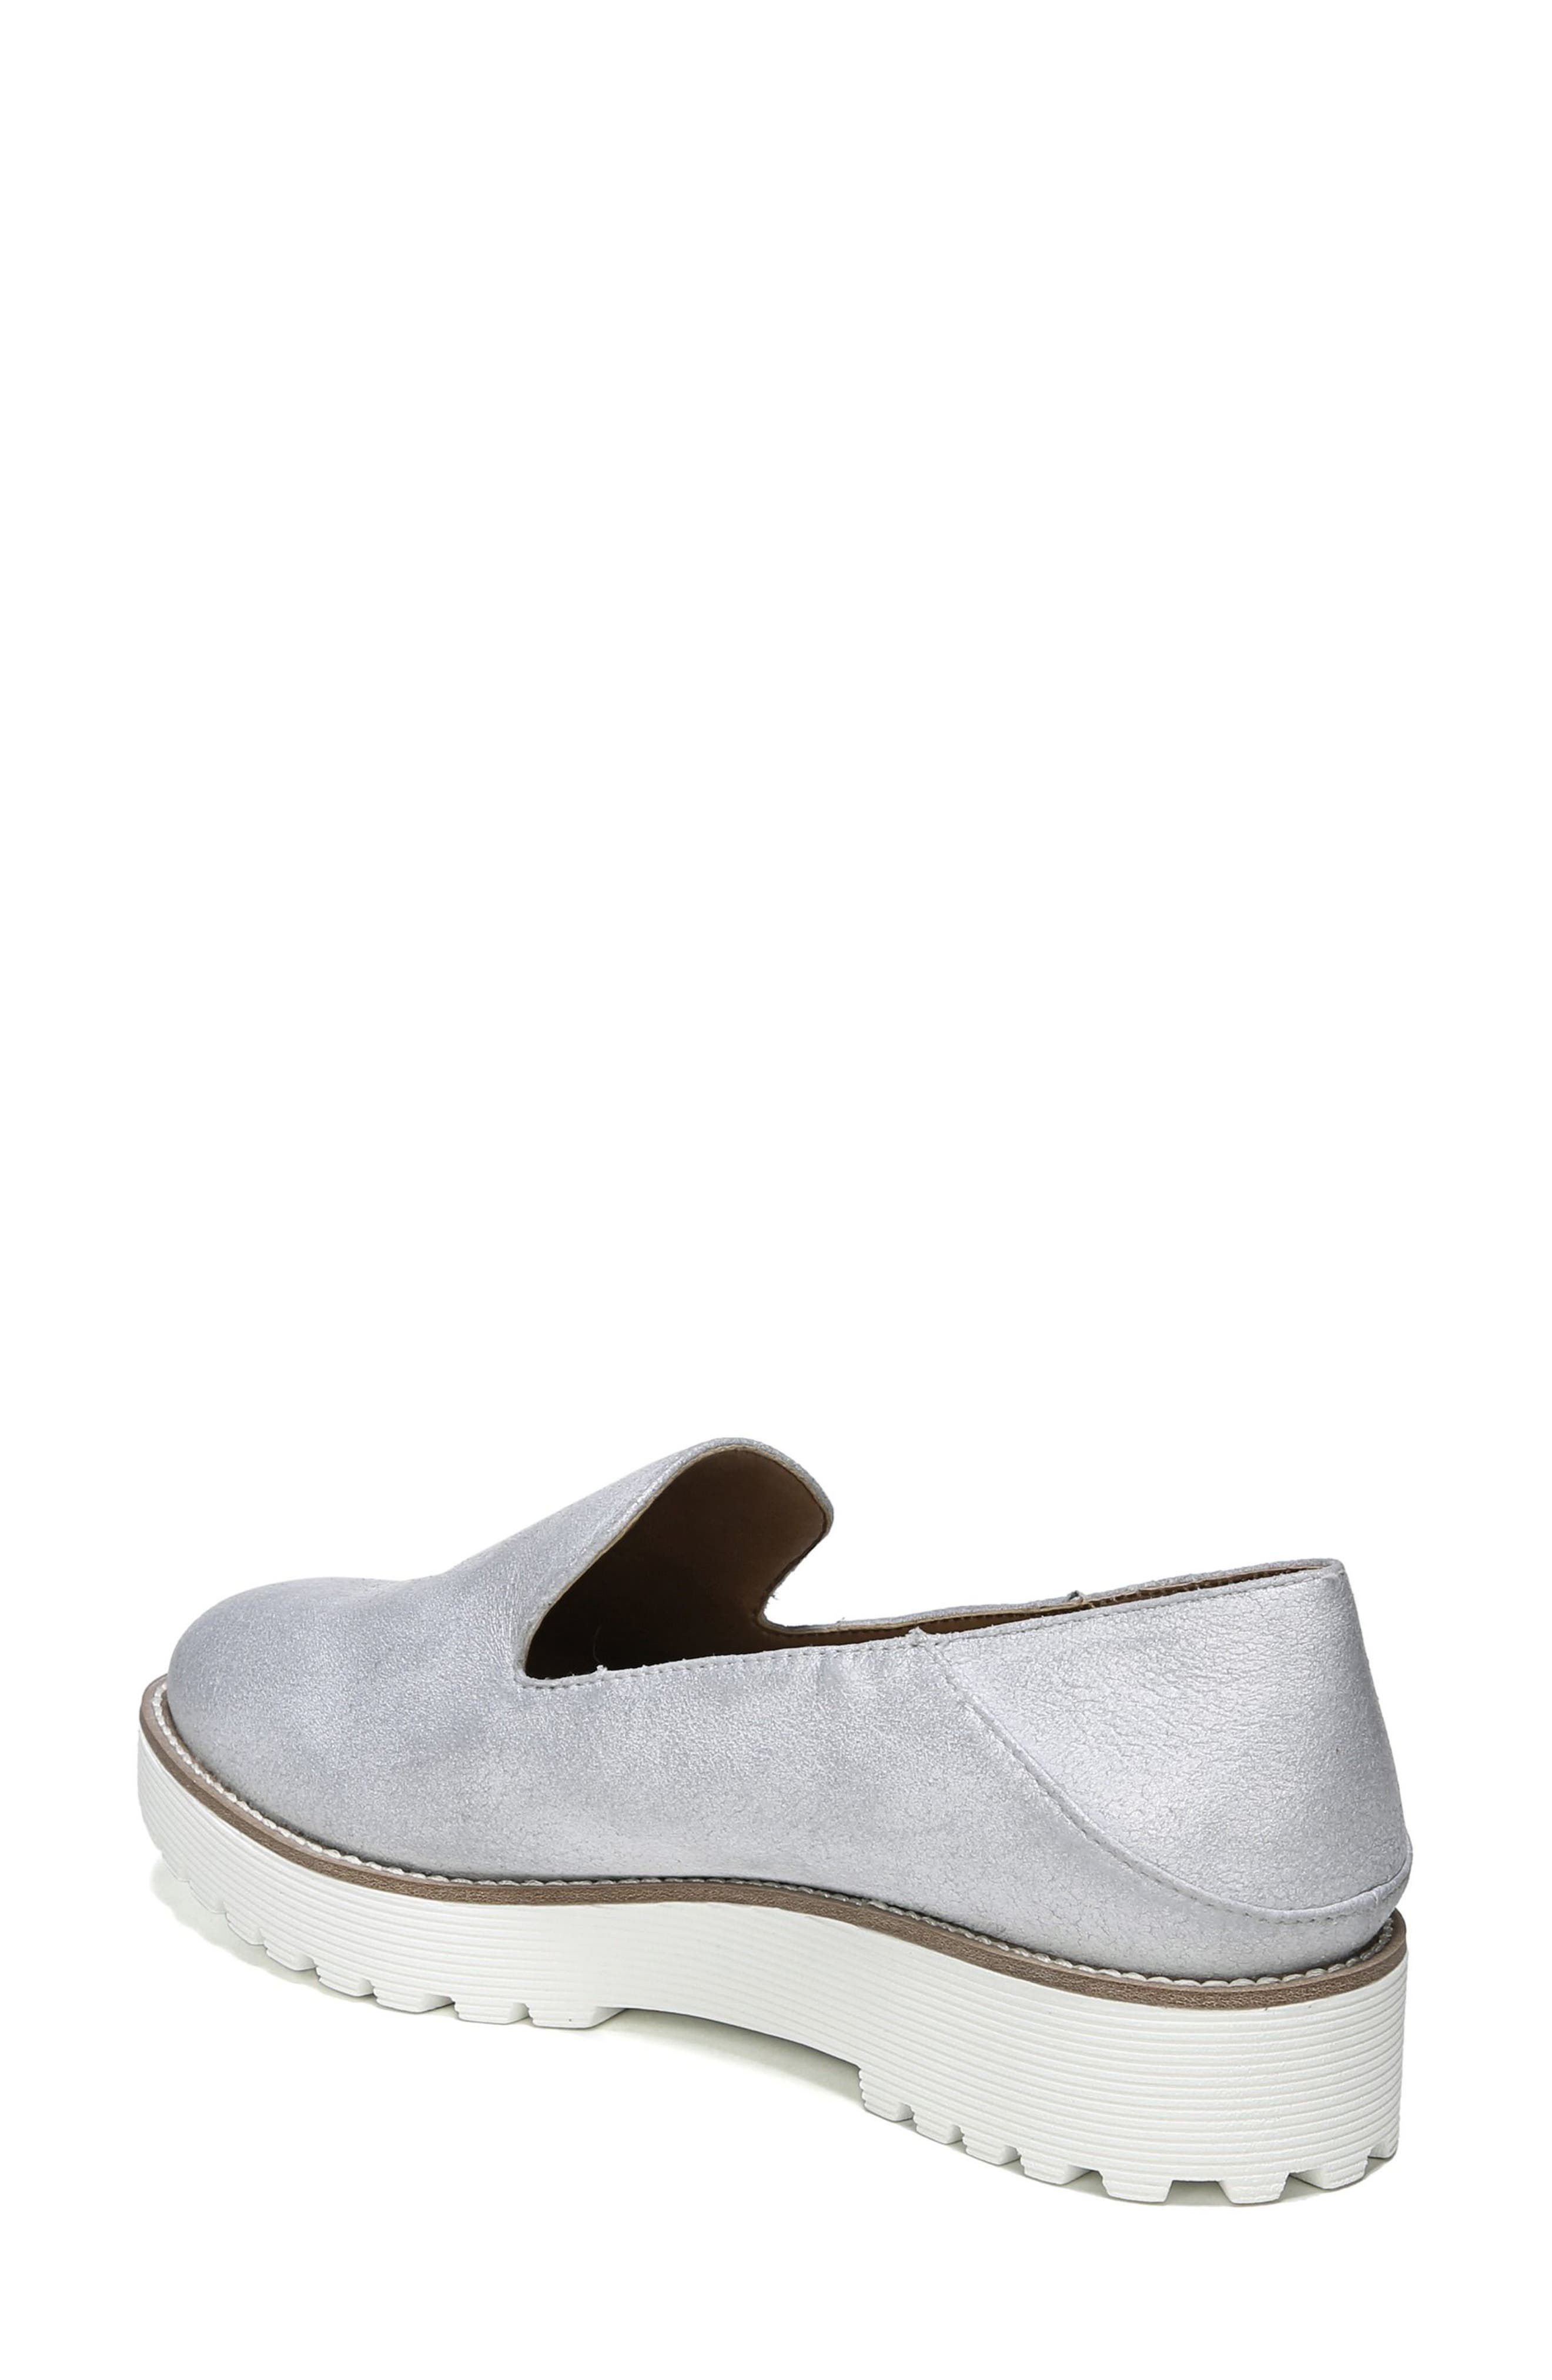 Jaxton Loafer,                             Alternate thumbnail 2, color,                             Artic Grey Suede